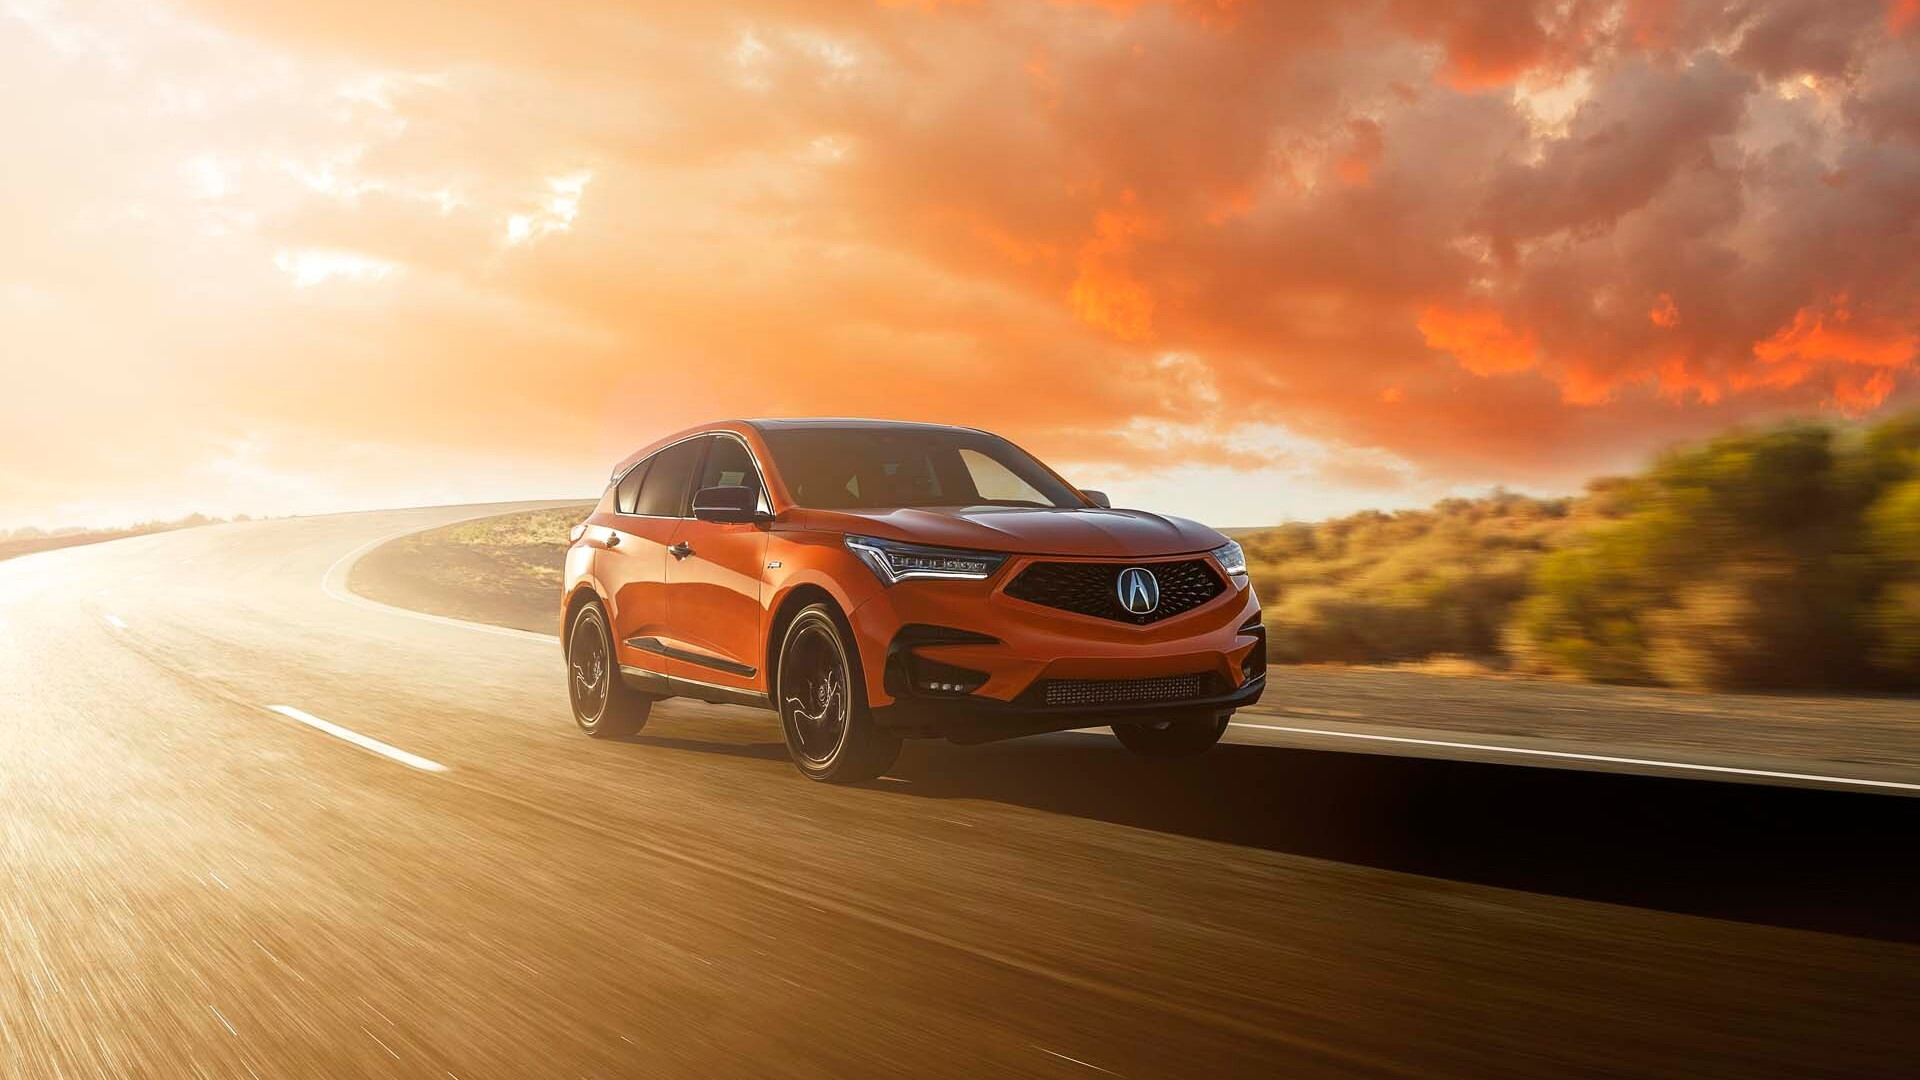 2021 acura rdx pmc edition arrives with nsx's thermal